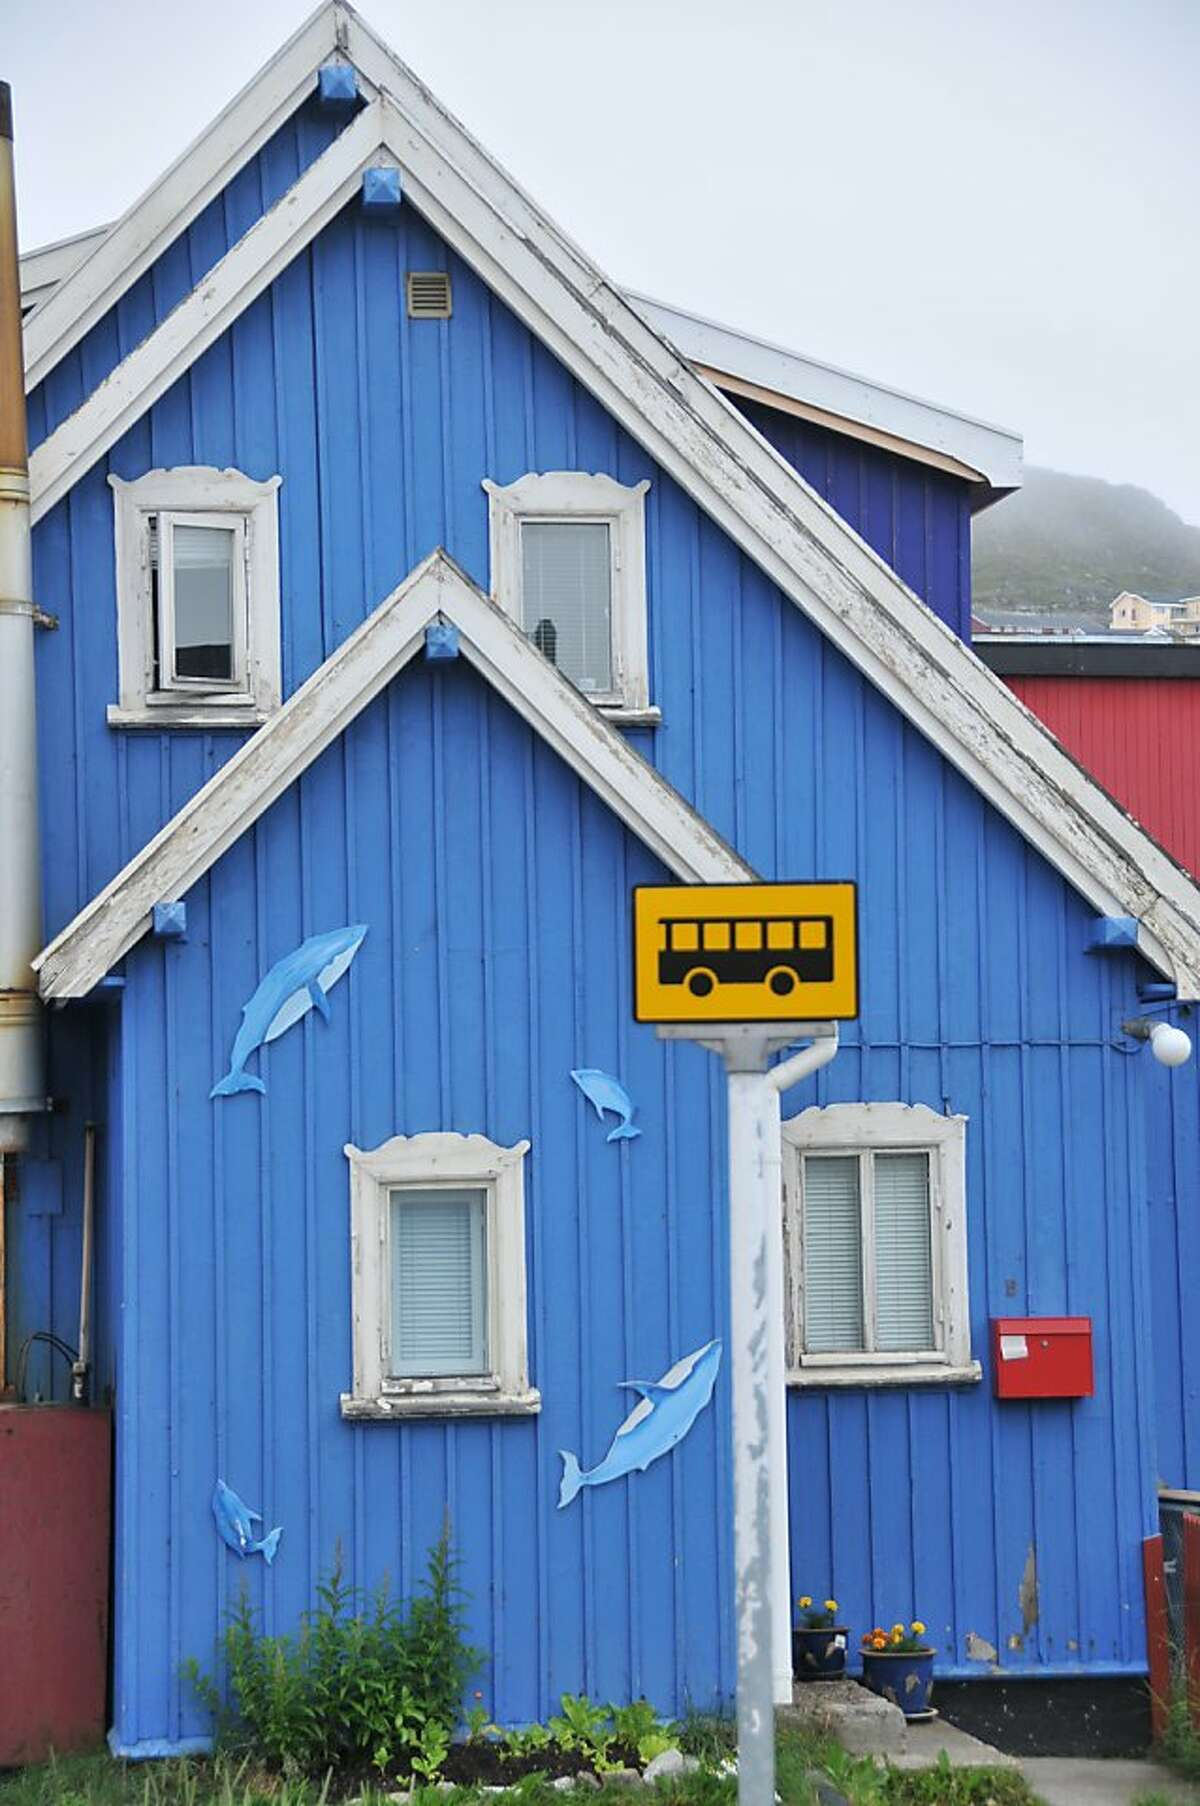 A colorful house in the town of Qaqortoq.